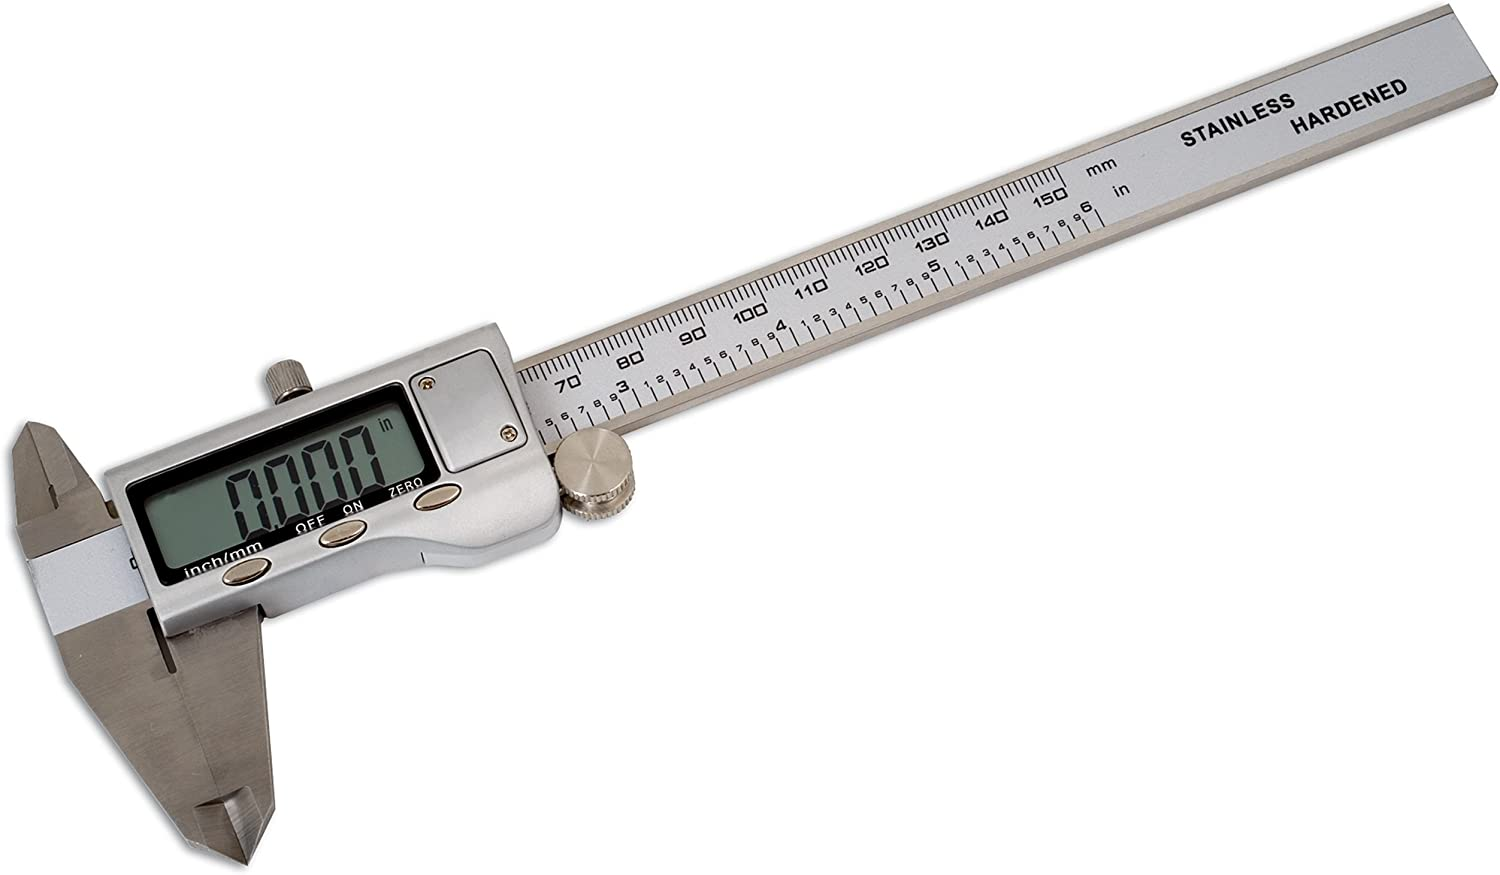 Stainless Steel Jewelry Measuring Tool for Mechanic Diameter Digital Caliper Vernier Caliper with Fractions//Inch//Metric Conversion Electronic Caliper 0-150mm//9.3 Inch Digital Vernier Caliper